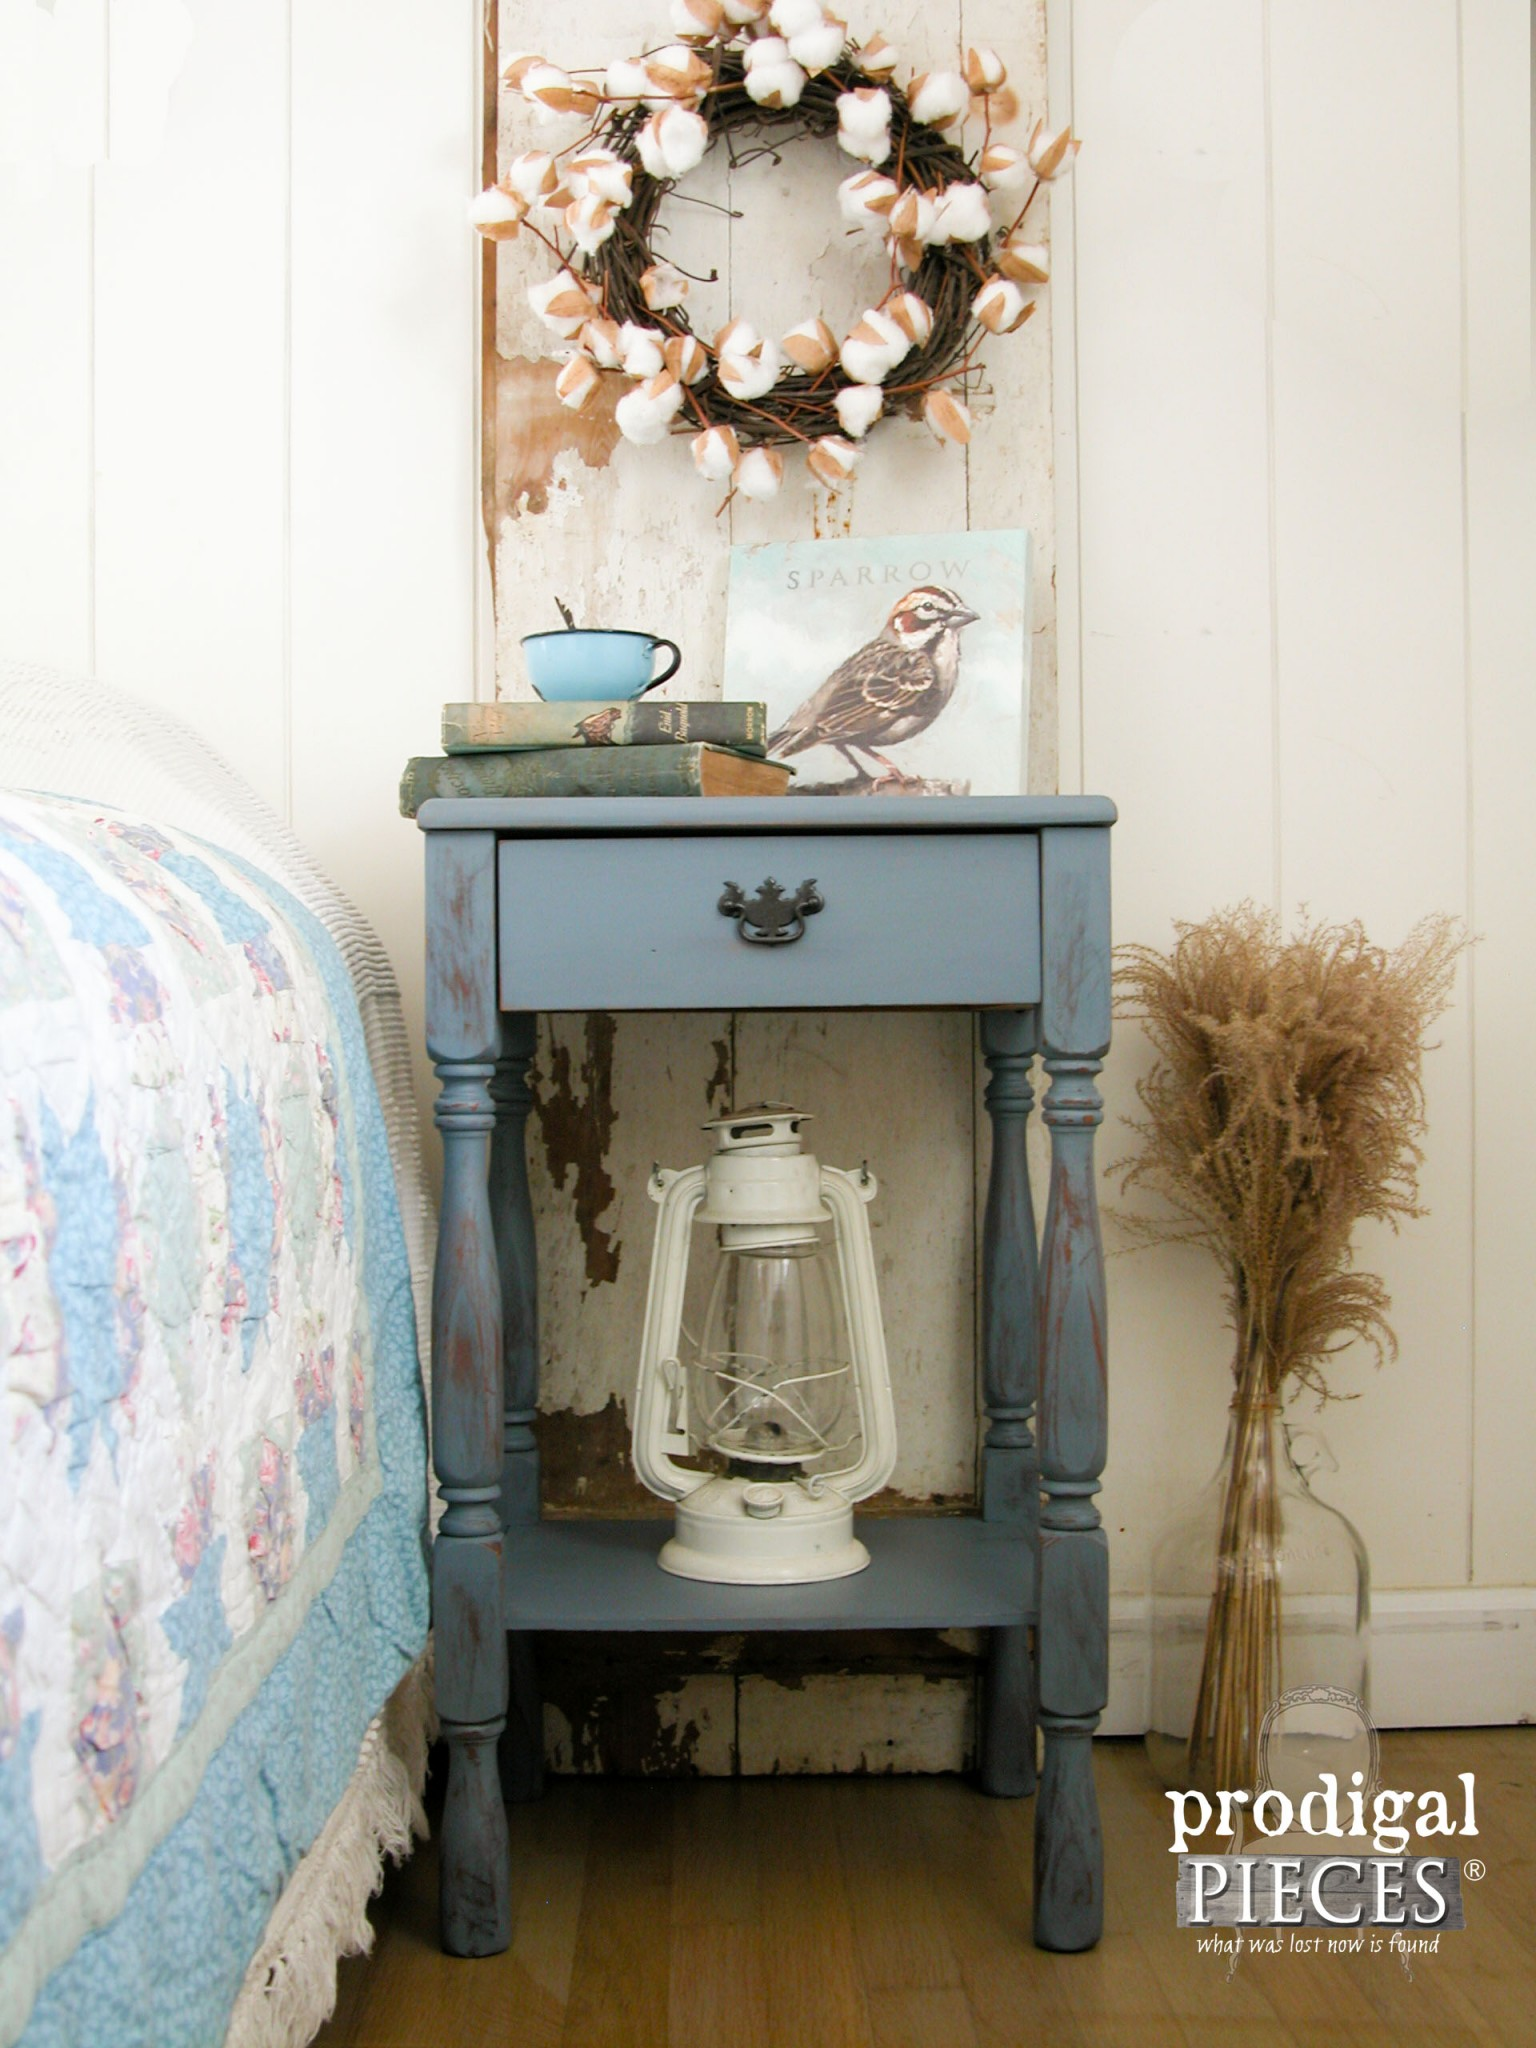 Vintage Cottage Chic Nightstand by Prodigal Pieces | www.prodigalpieces.com